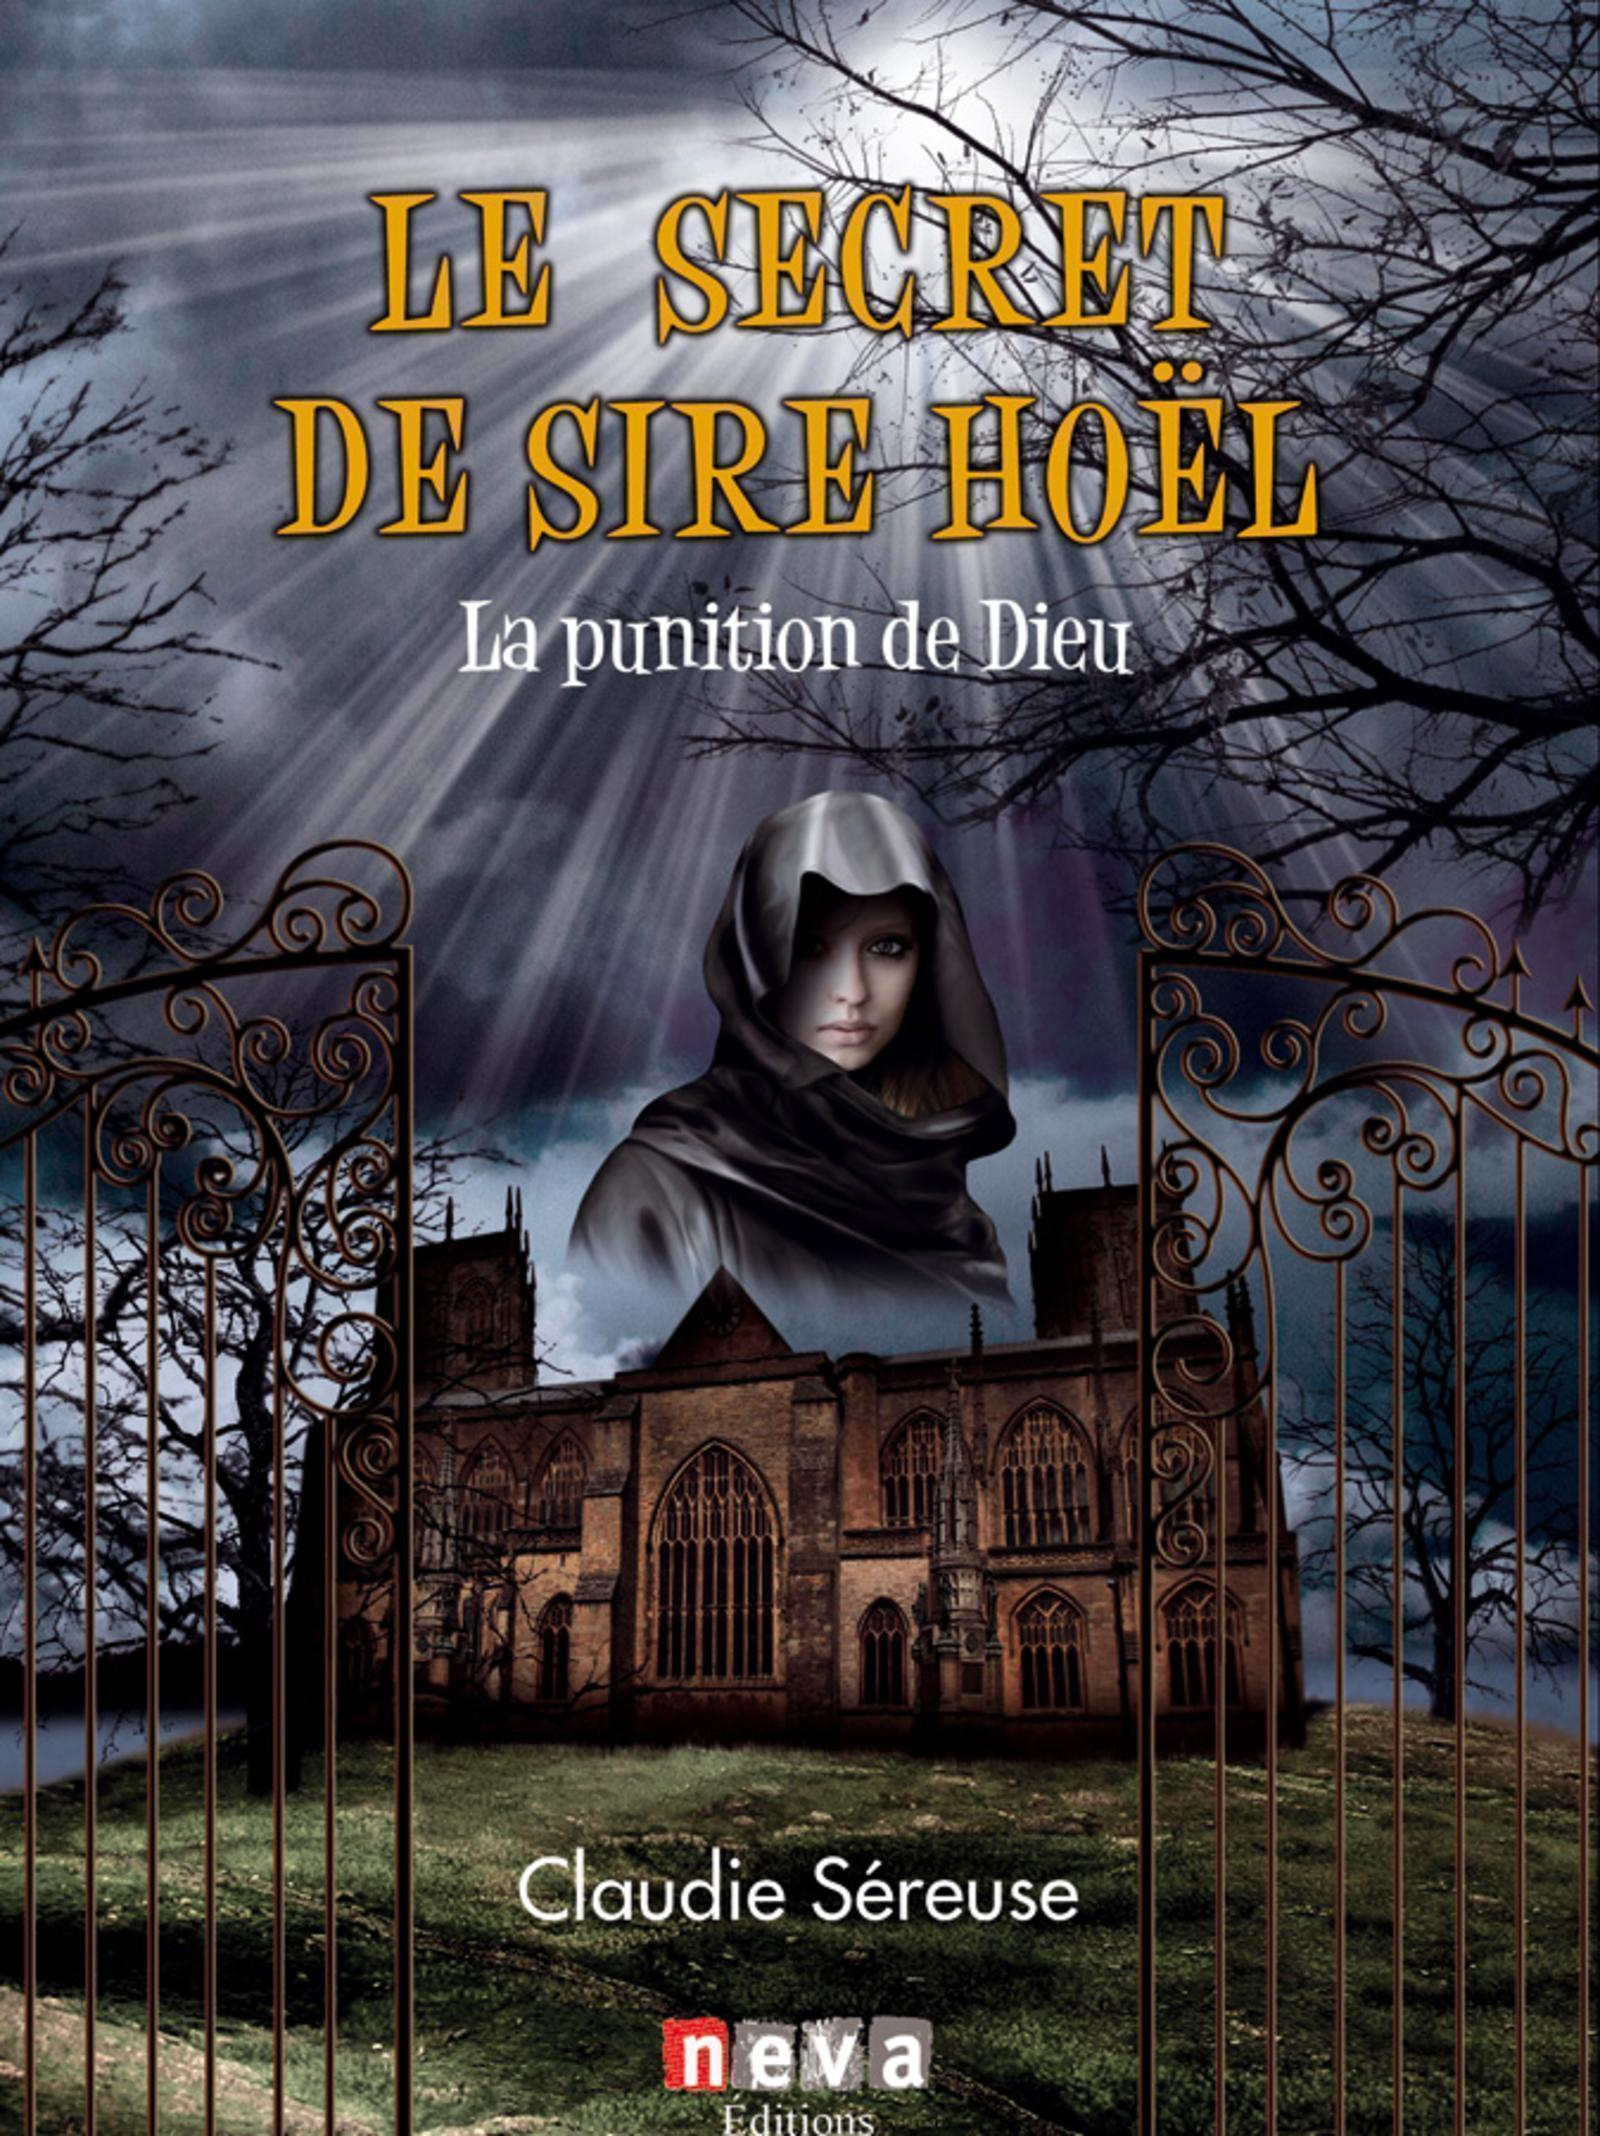 LE SECRET DE SIRE HOEL - TOME 1 - LA PUNITION DE DIEU